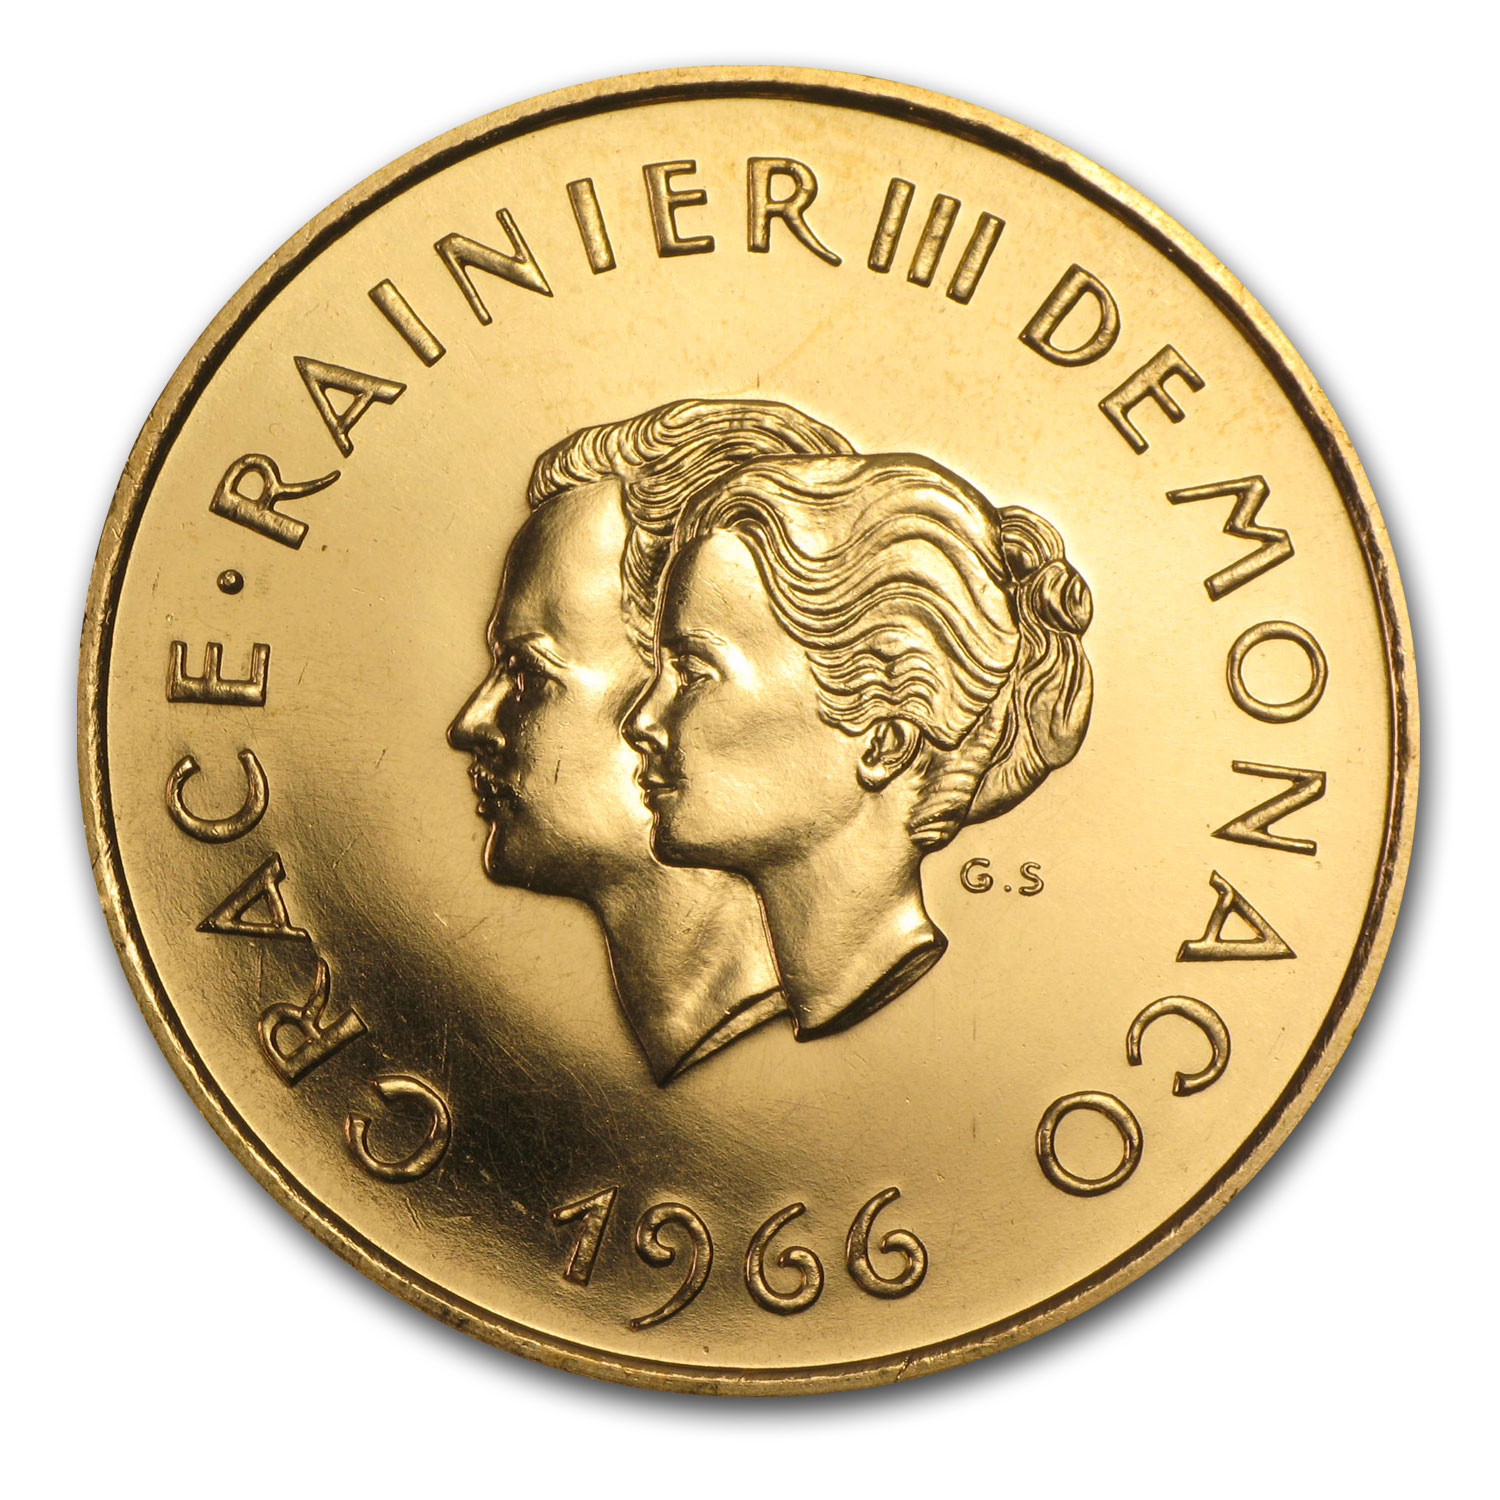 1966 Monaco Gold 200 Francs Wedding Anniversary